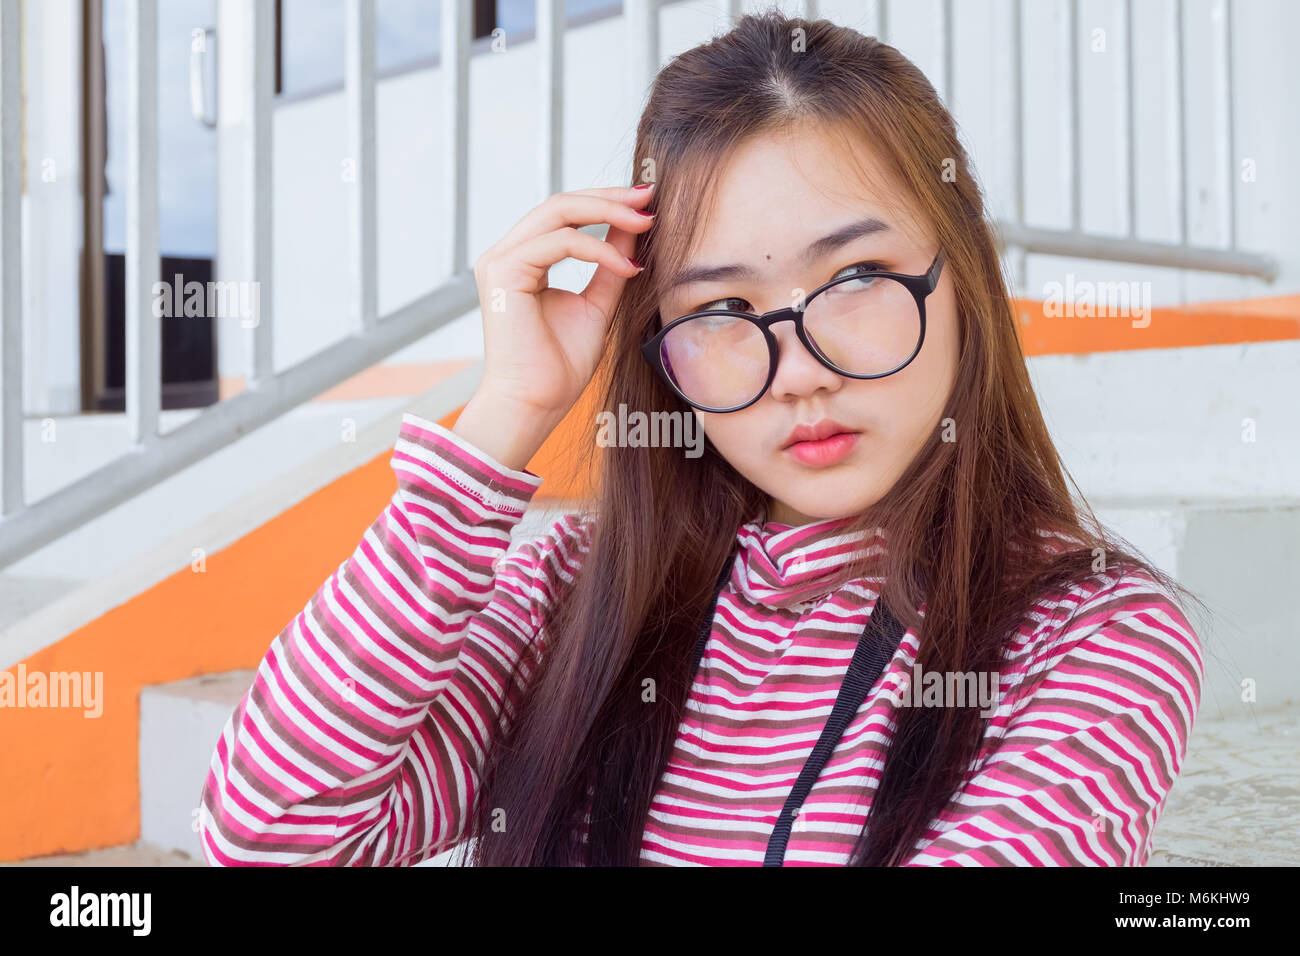 0feed912ab28 Fashion portrait of Hipster teen girl wear casual warm clothes ...